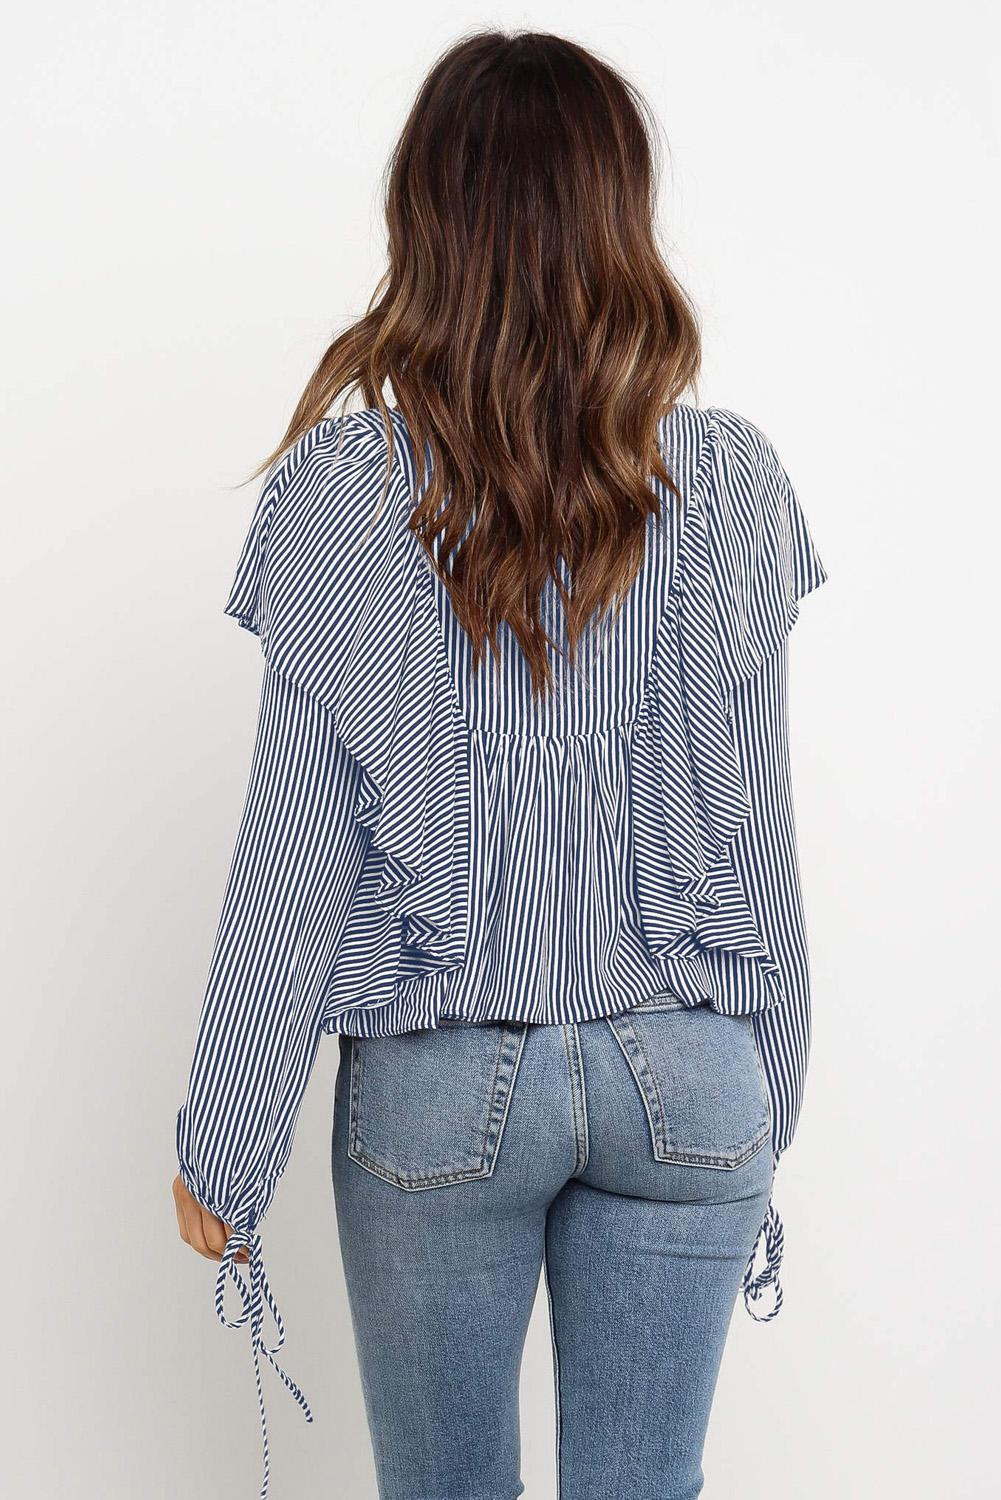 Sky Blue Button Ruffle&Tie Striped Shirt-Tops, Blouses & Shirts-Azura Exchange